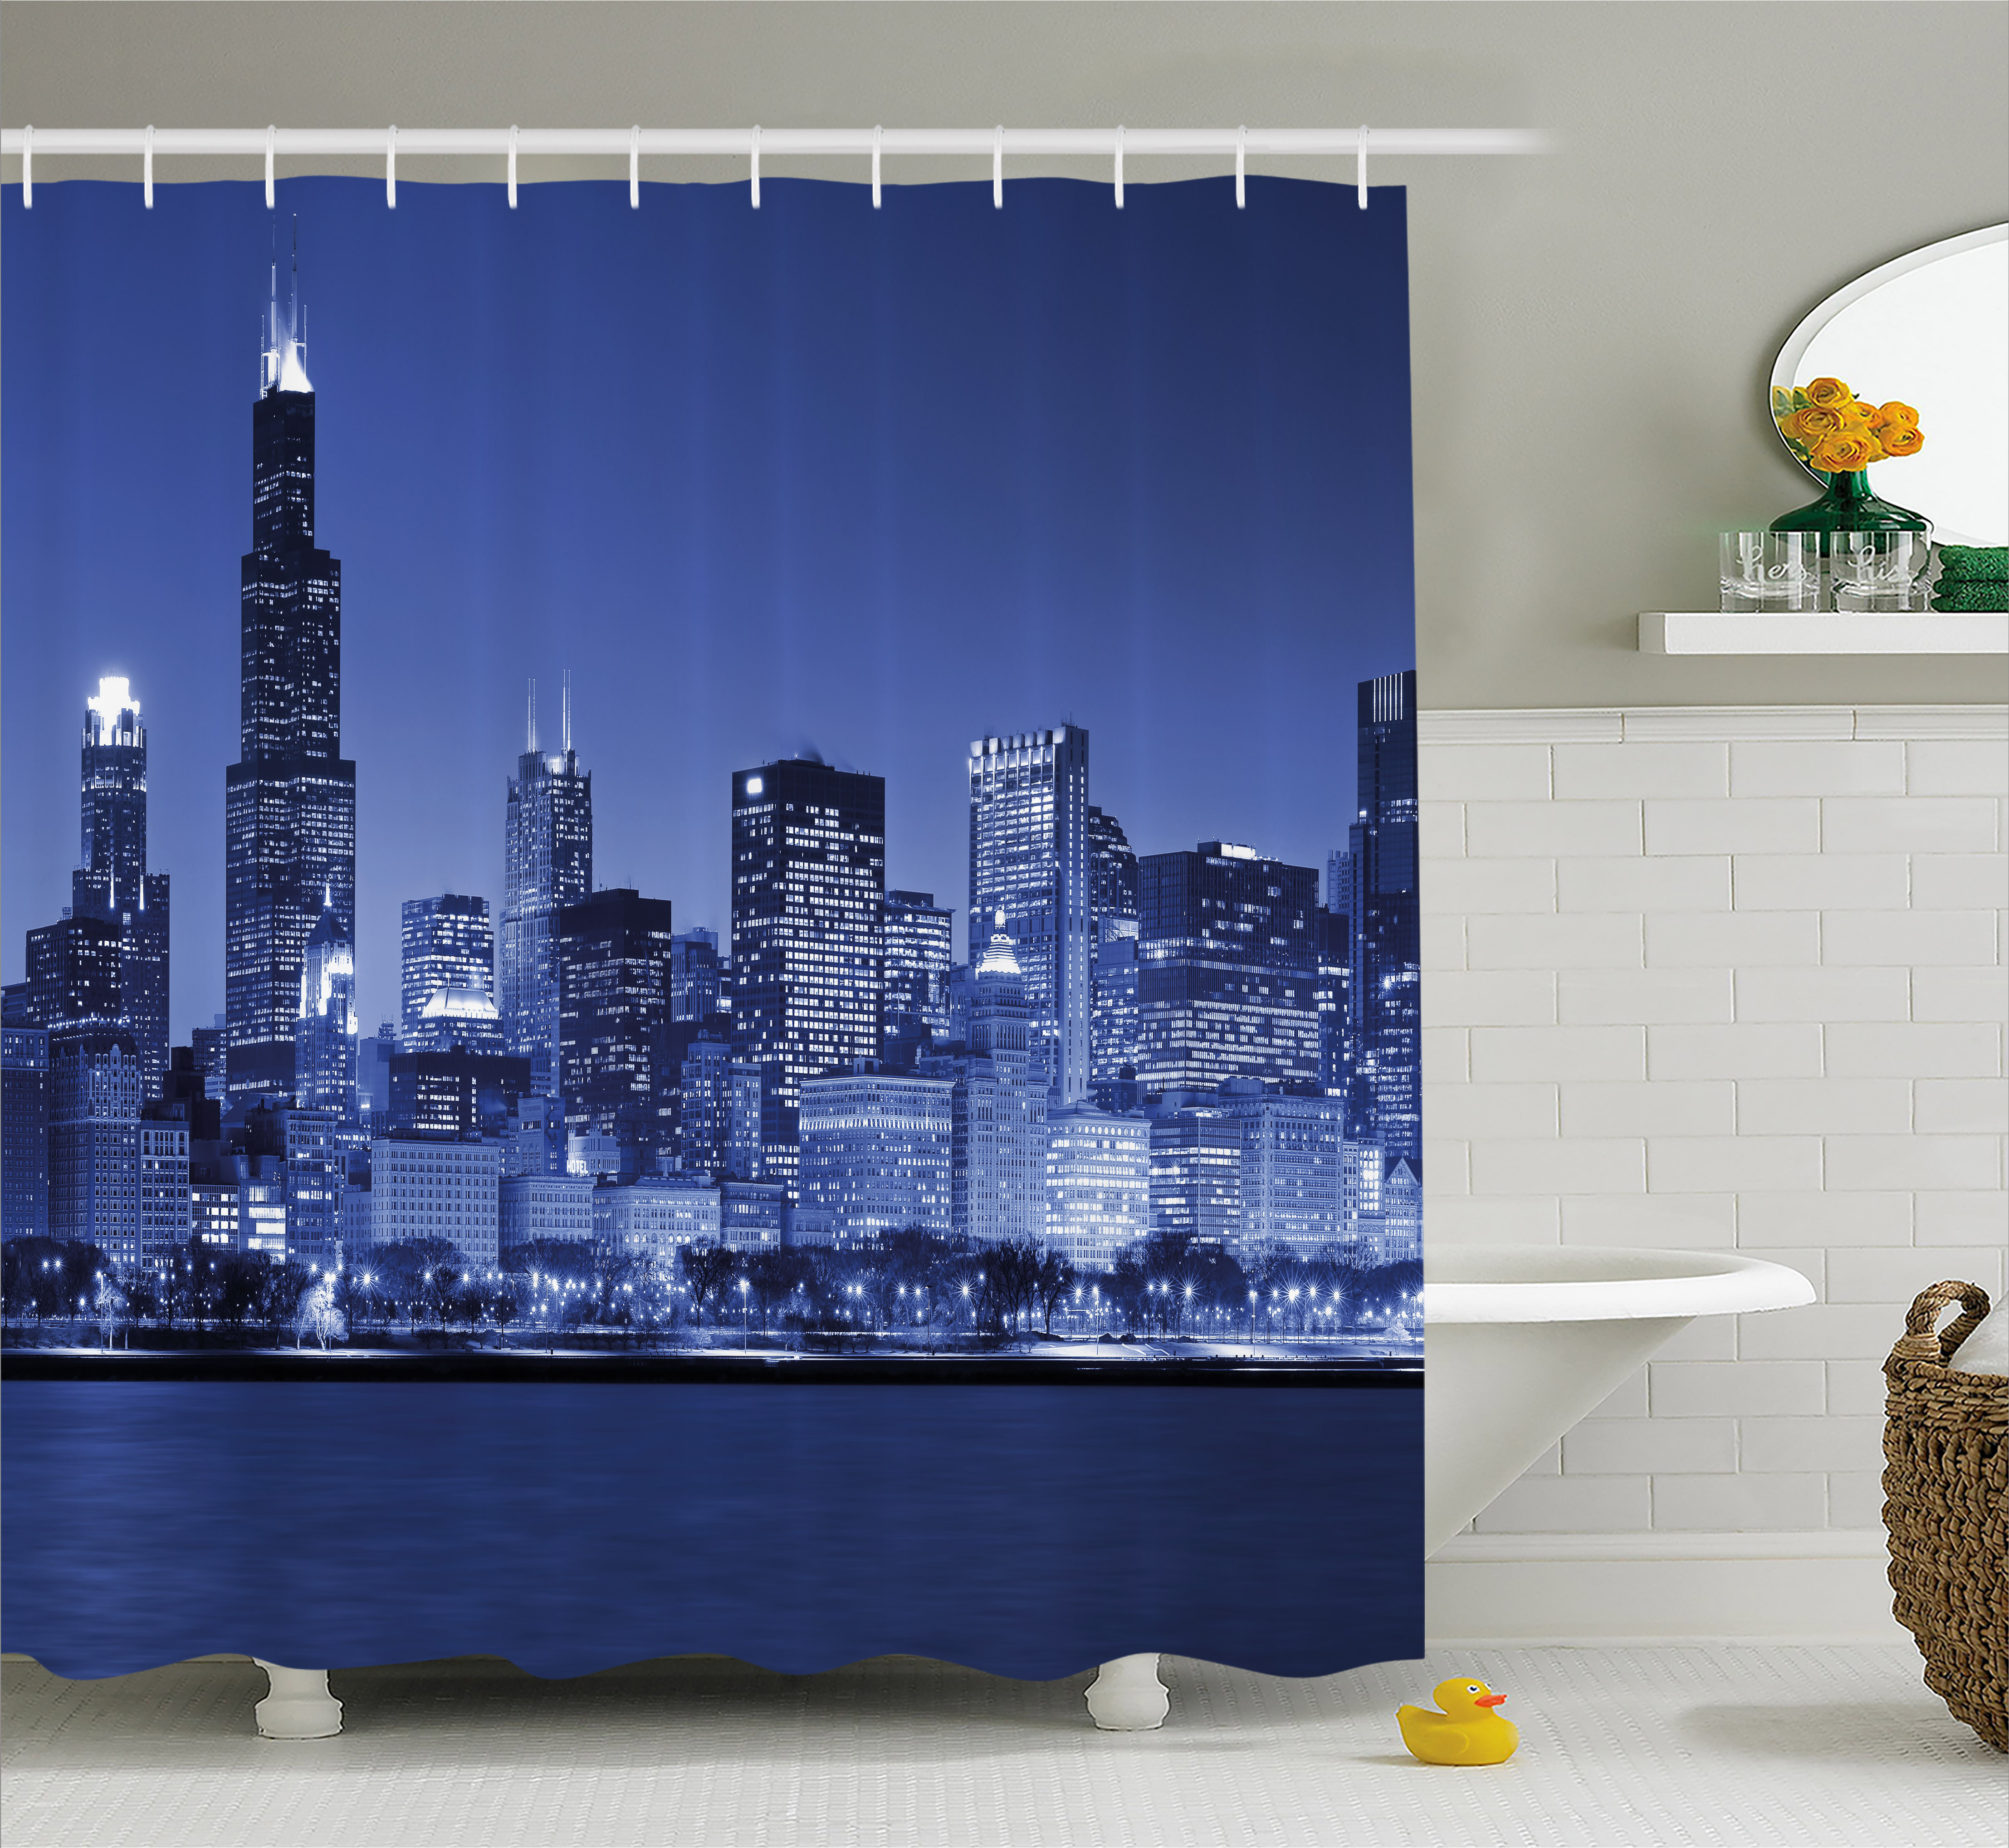 Usa Shower Curtain, Chigago City Skyline at Night with Tall Buildings Urban Modern Life American Town Scene, Fabric Bathroom Set with Hooks, 69W X 84L Inches Extra Long, Dark Blue, by Ambesonne